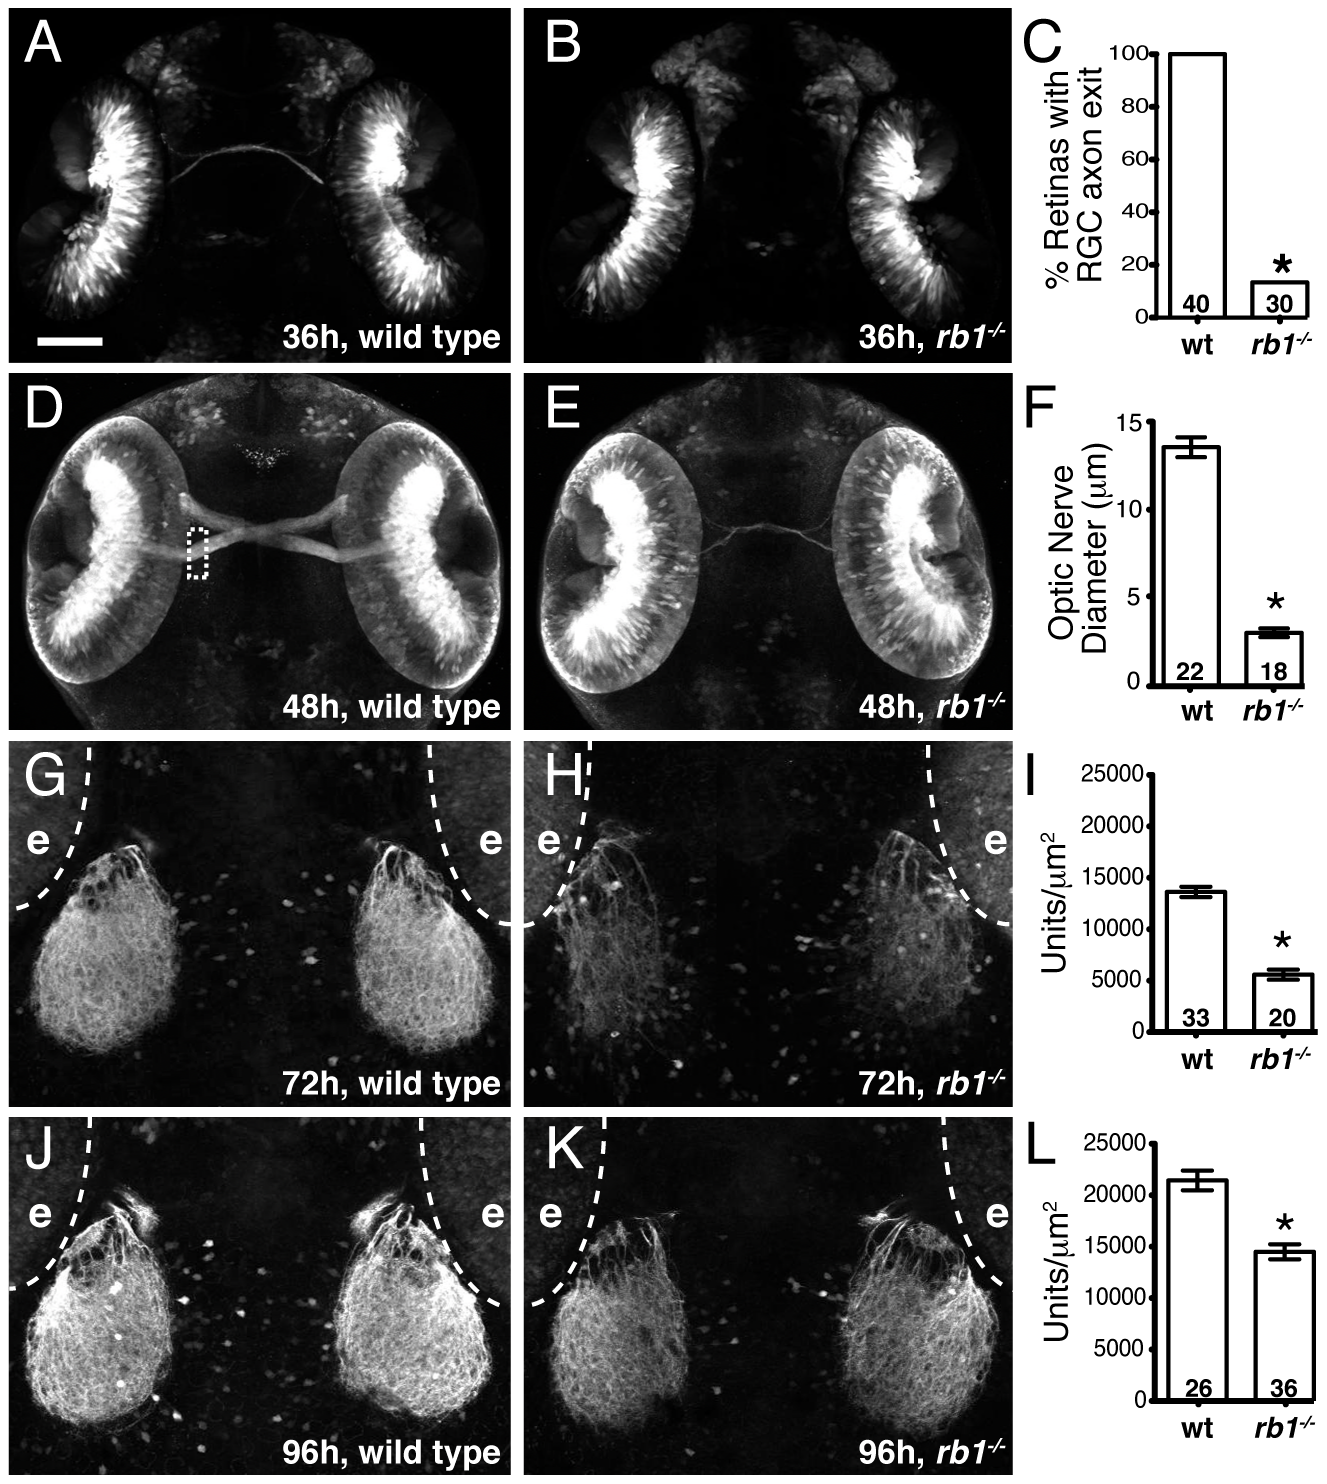 Rb1-deficient embryos possess delayed retinotectal projection.